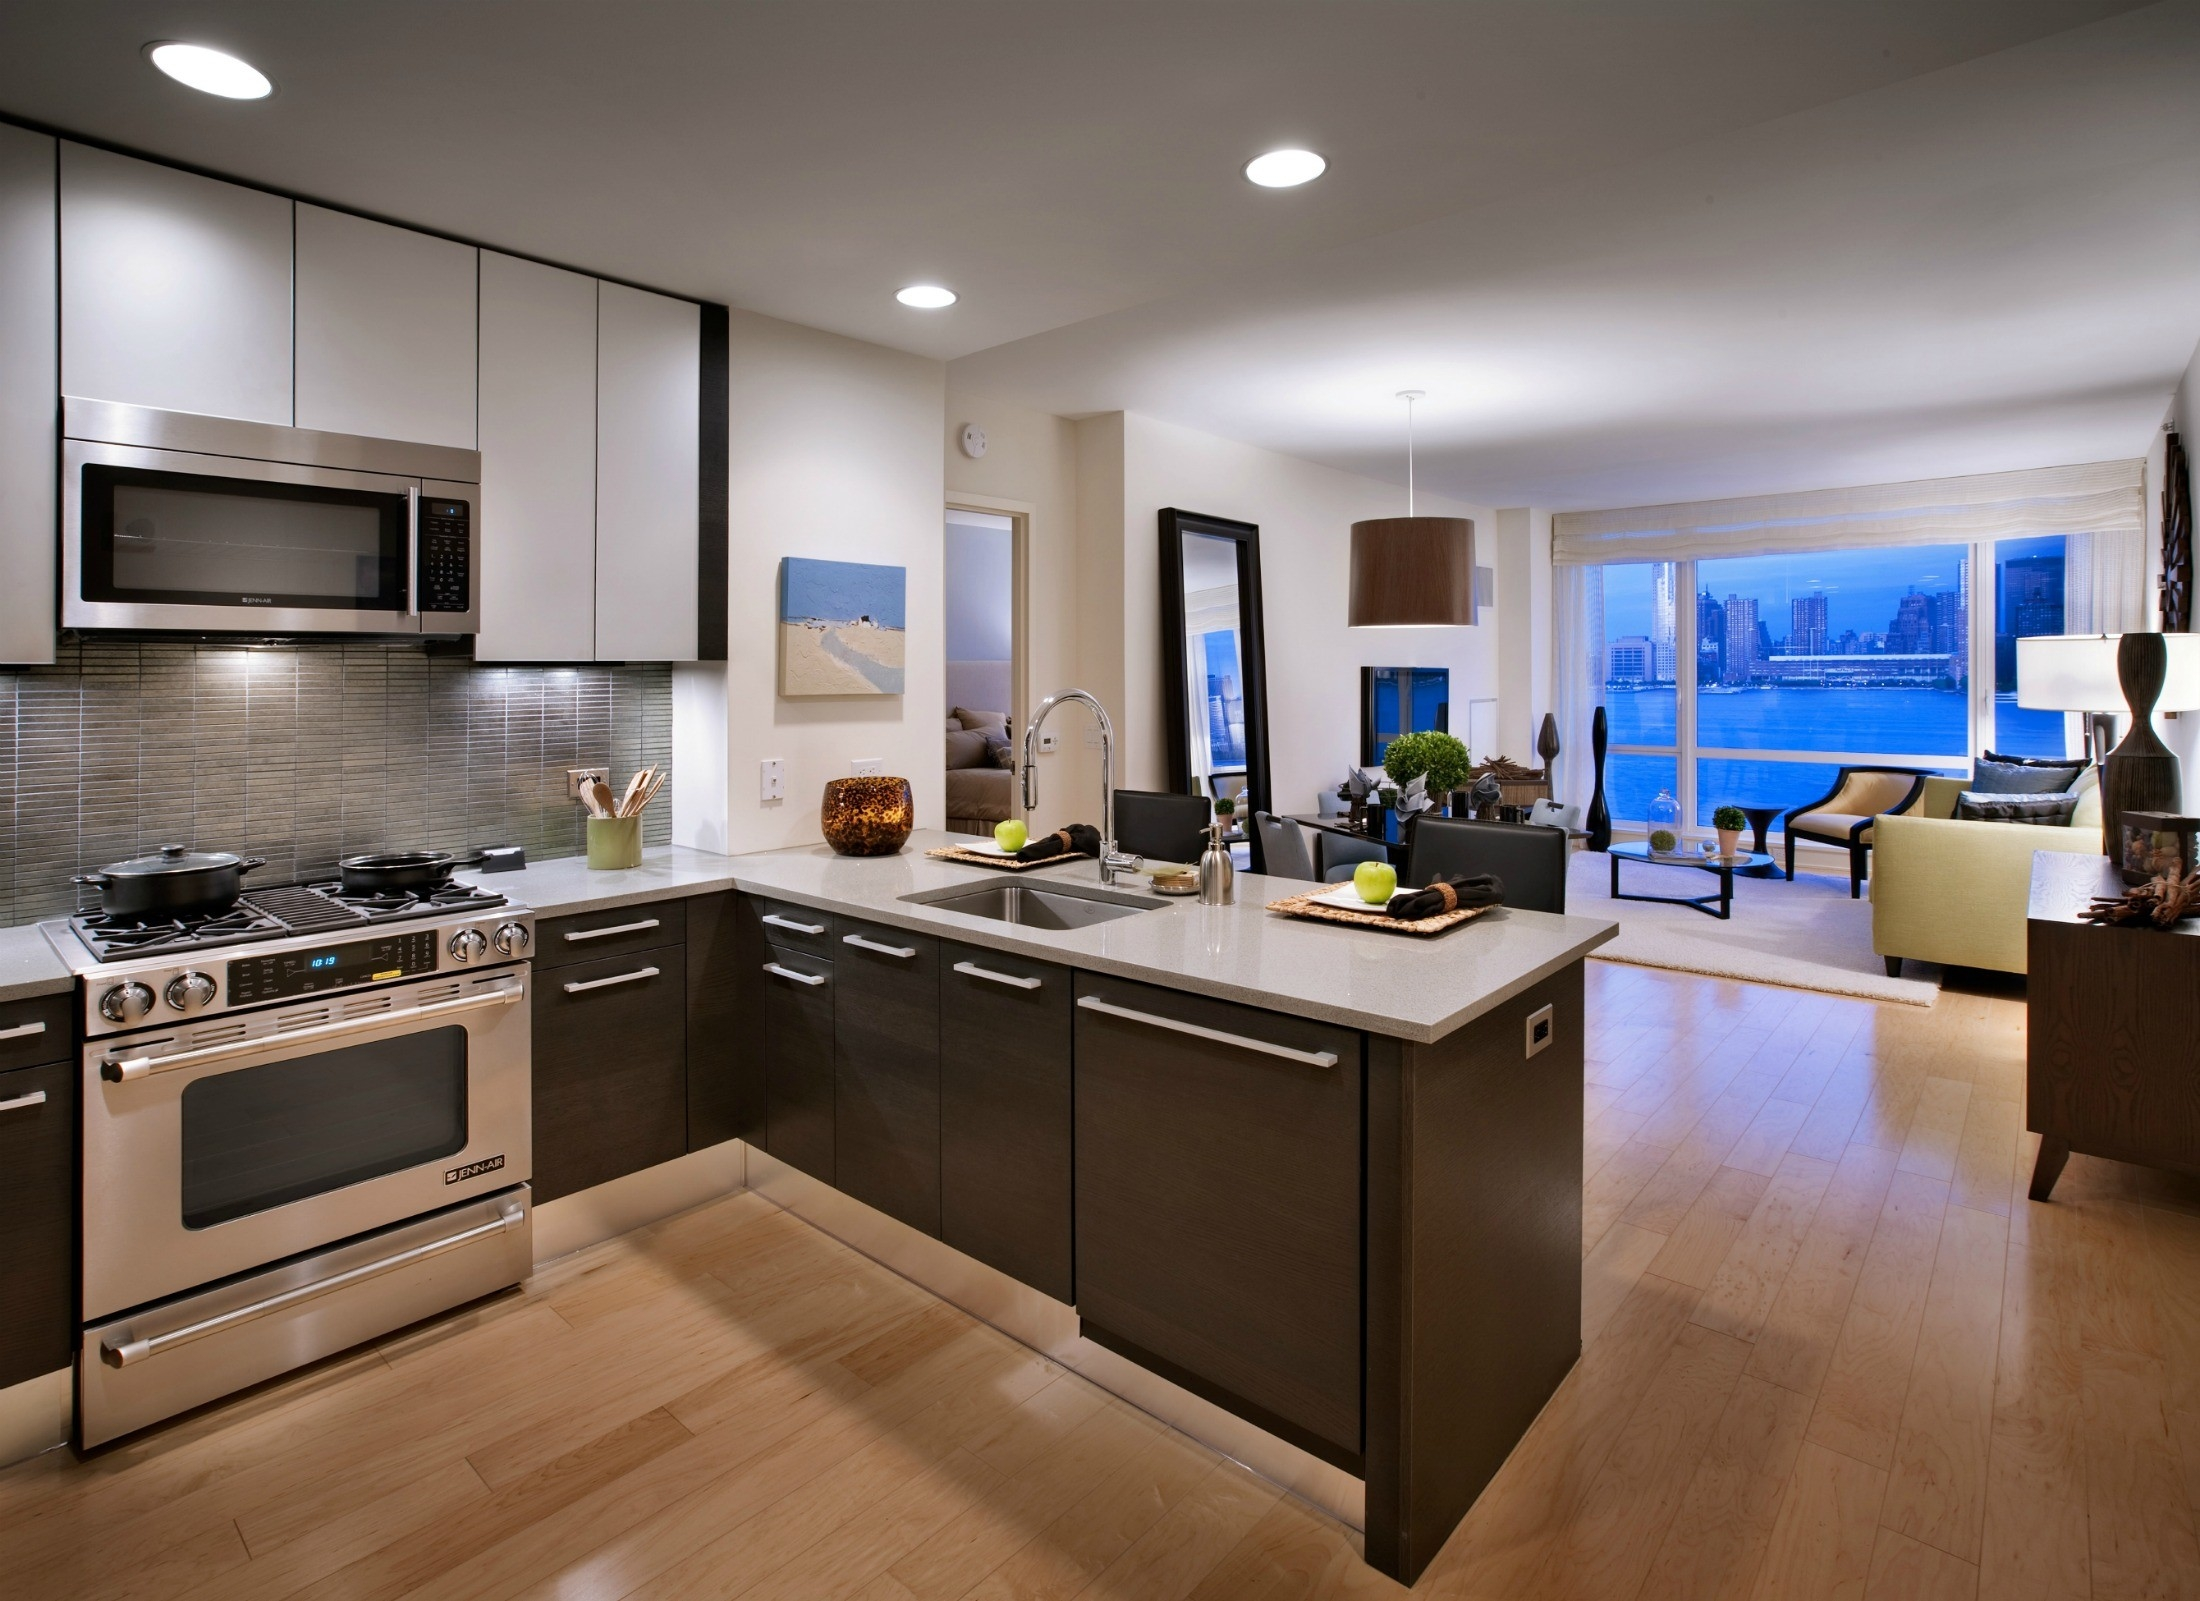 Open Kitchen Living Room Small Kitchen Decorating Ideas For Apartment Open Kitchen Living Room Decorating Ideas Interior Design Ideas Kitchen Family Room within Contemporary Apartment Kitchen White Color Floor Interior Design